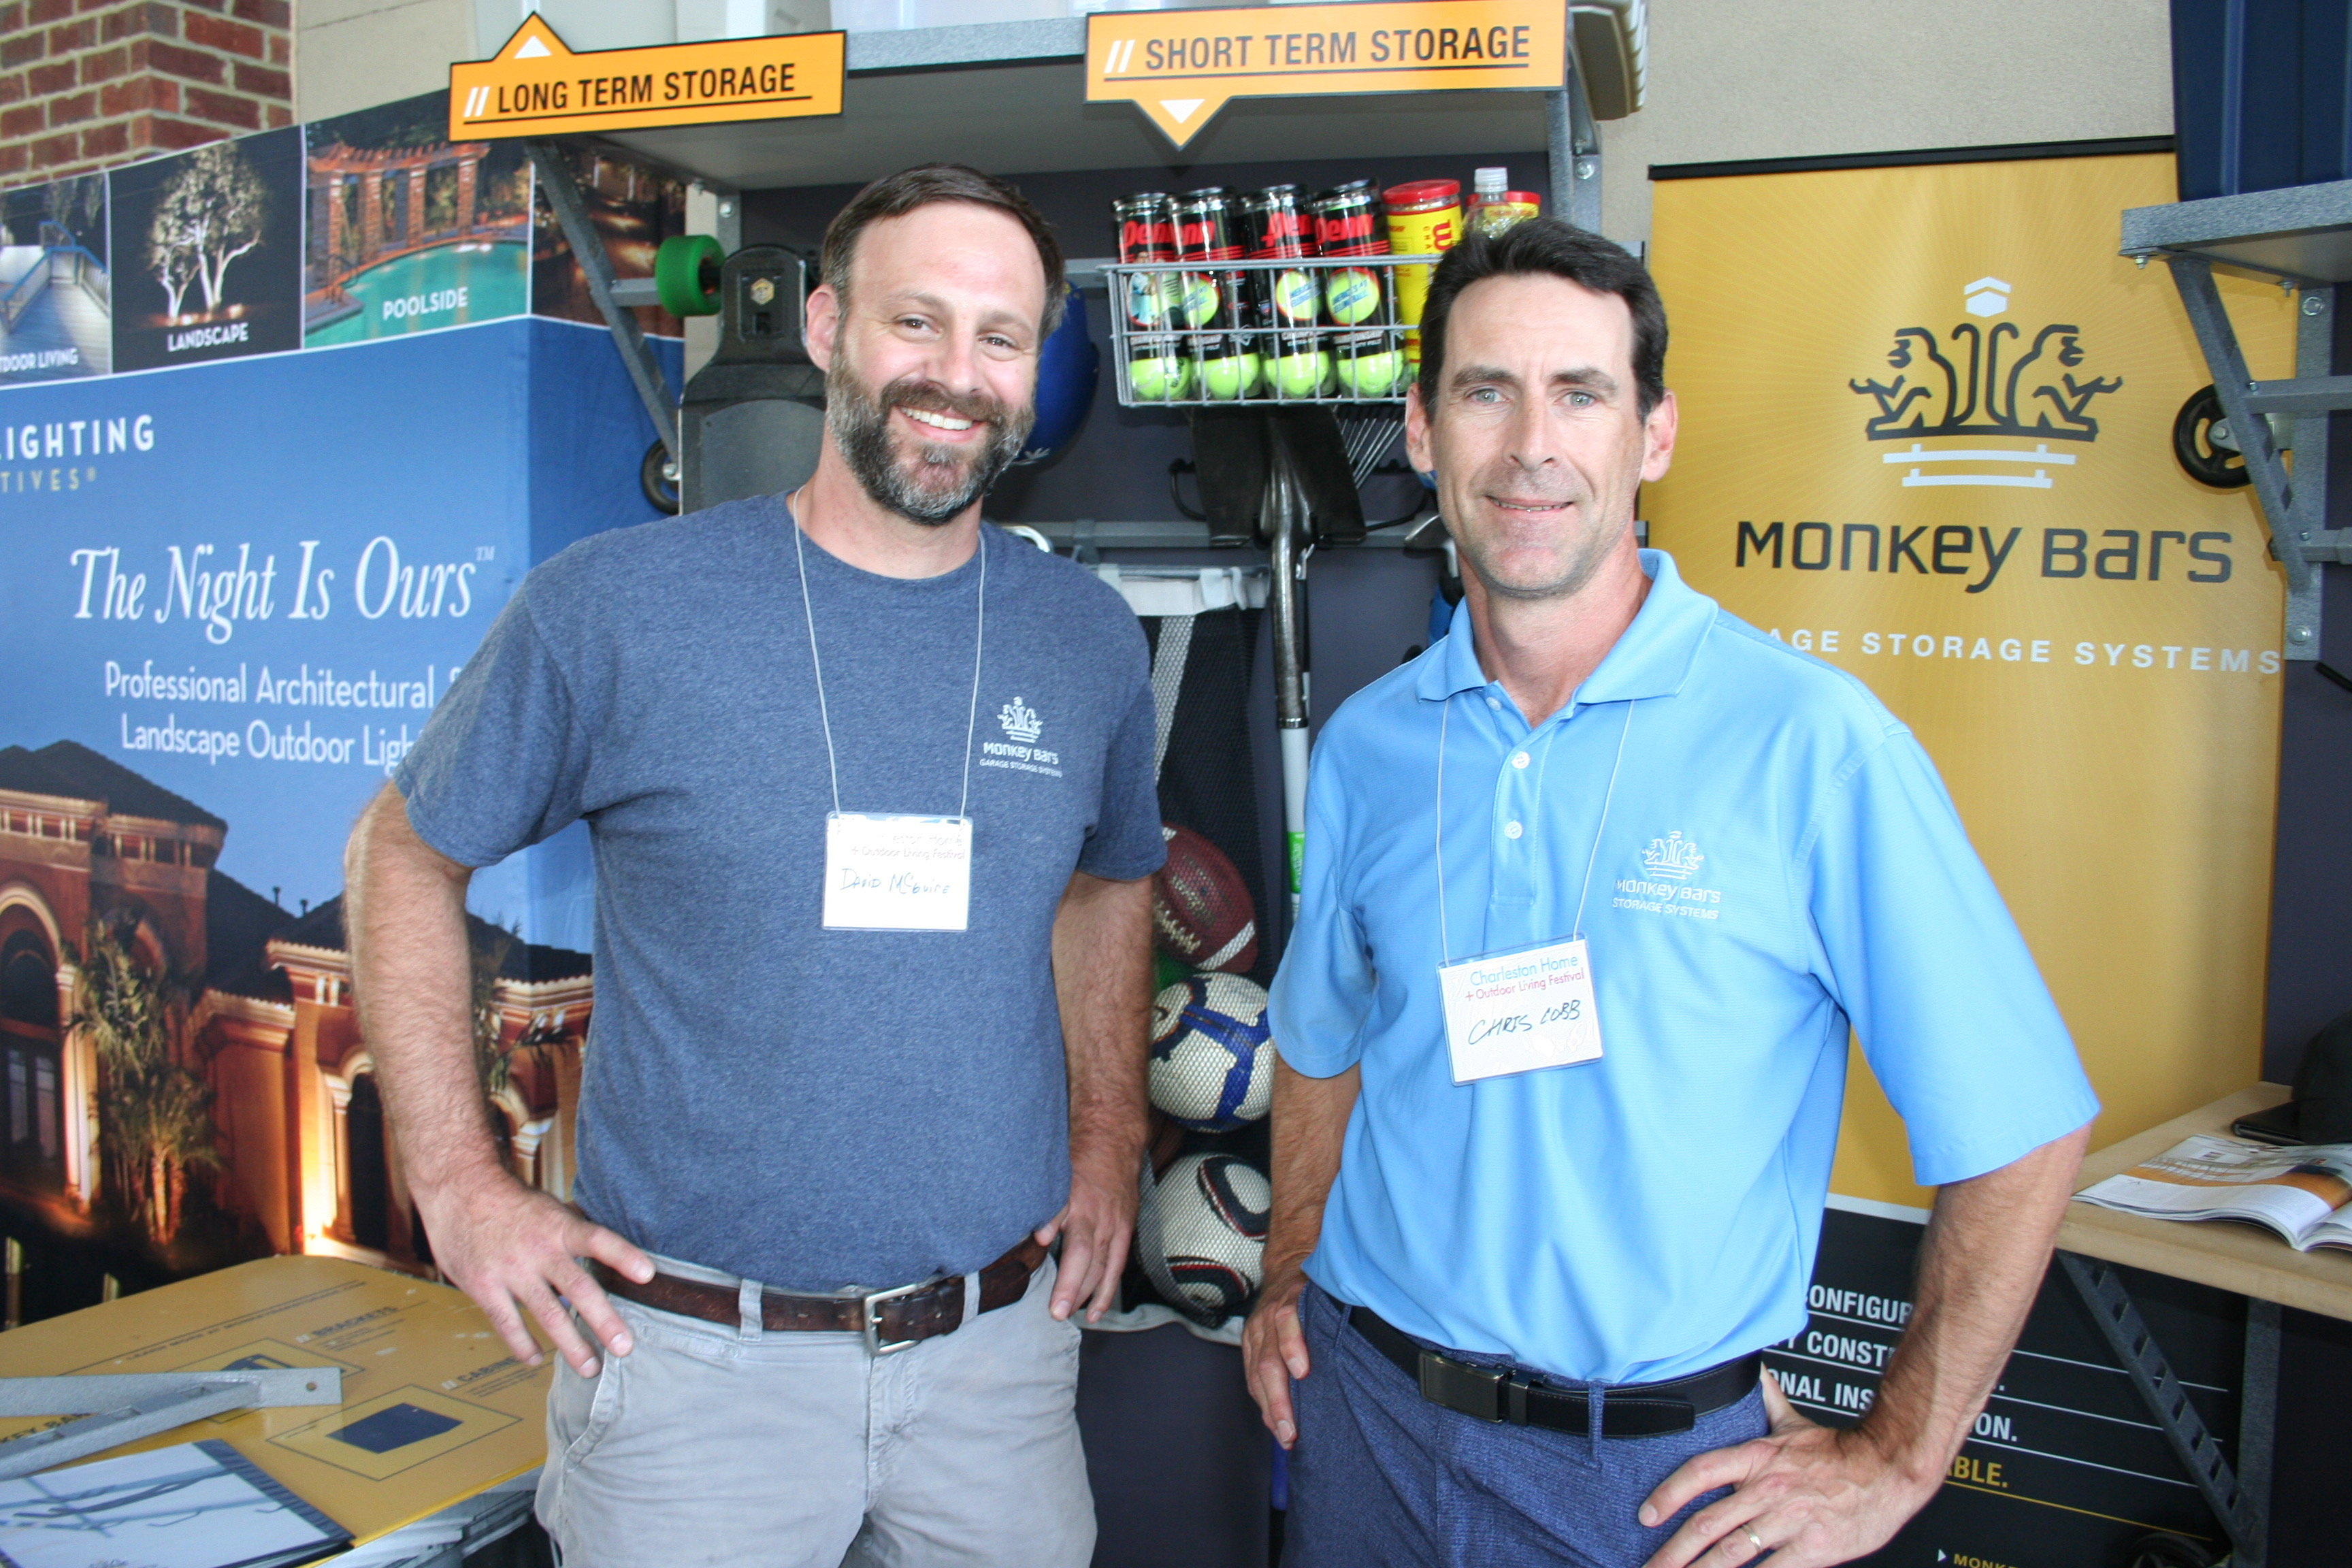 David McGuire and Chris Cobb of Monkey Bars educated visitors to their booth about the benefits of garage organization/storage systems.